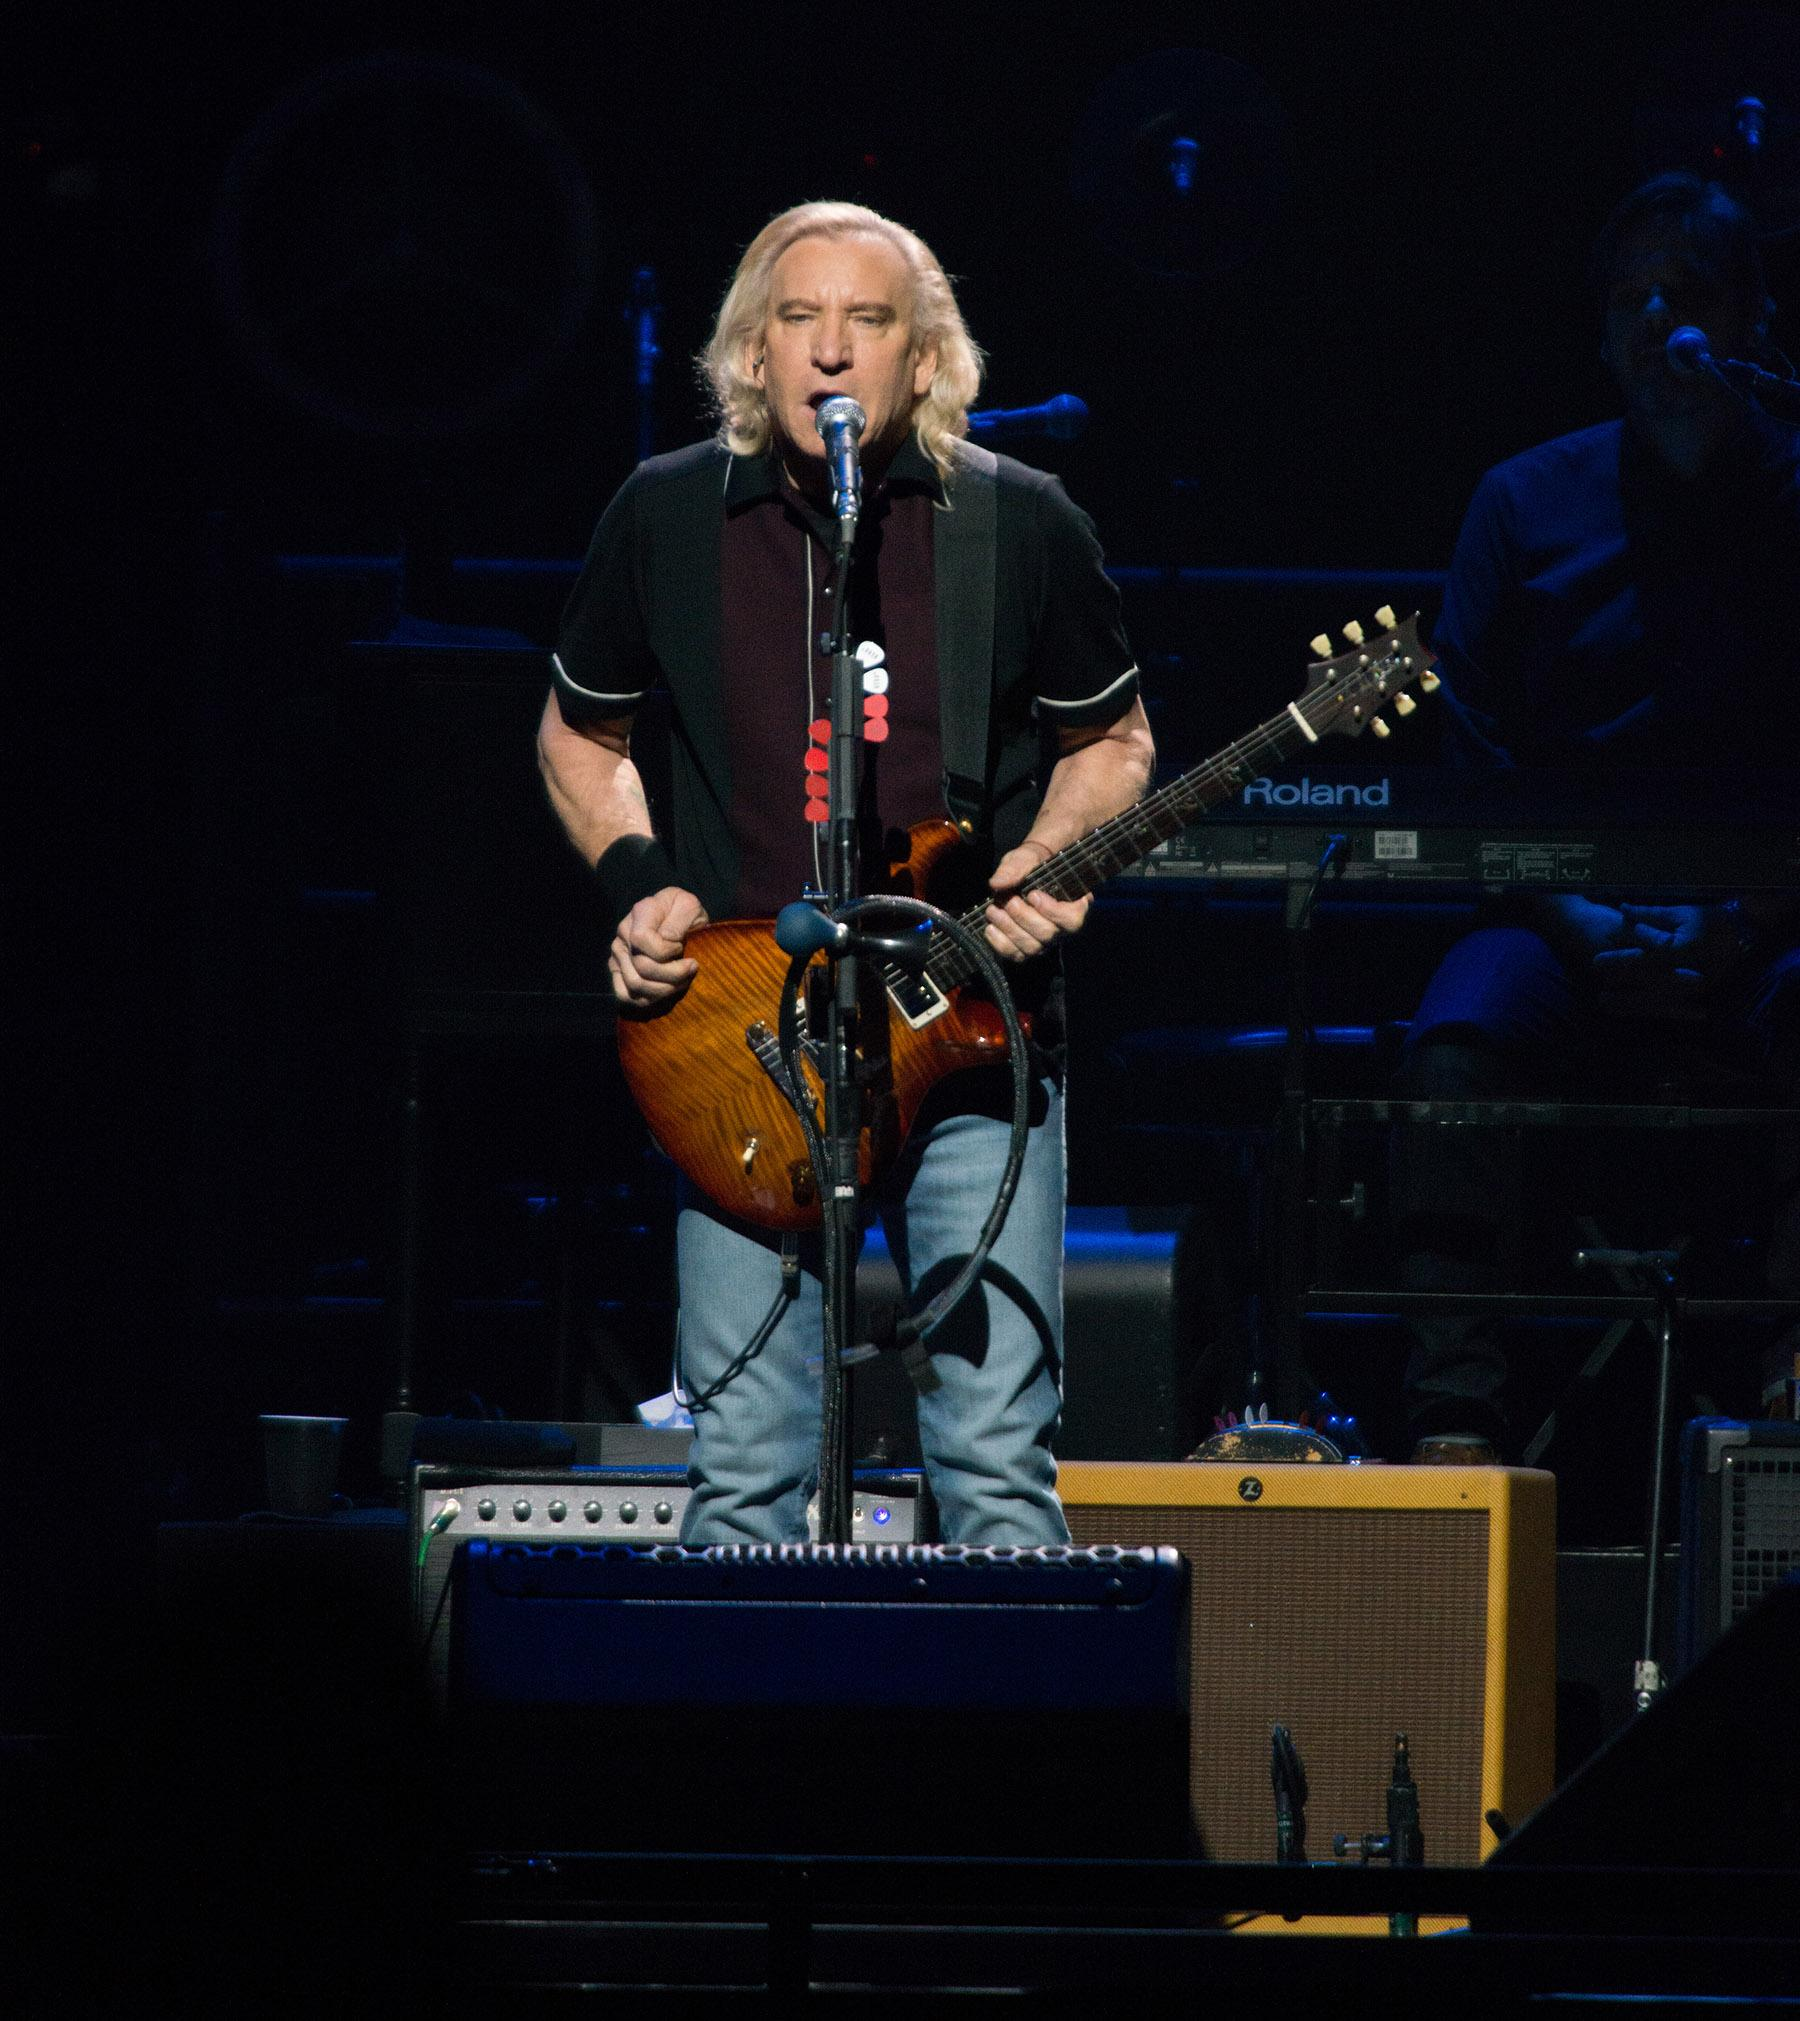 Iconic rock group the Eagles made a stop at Portland's Moda Center on Tuesday night, playing a night full of hits for a packed house of fans. The band (Don Henley, Joe Walsh, Timothy B. Schmit) were joined on stage by Deacon Frey, the son of the late founding member Glenn Frey, and country music artist Vince Gill. (KATU Photo by Tristan Fortsch on May 22, 2018)